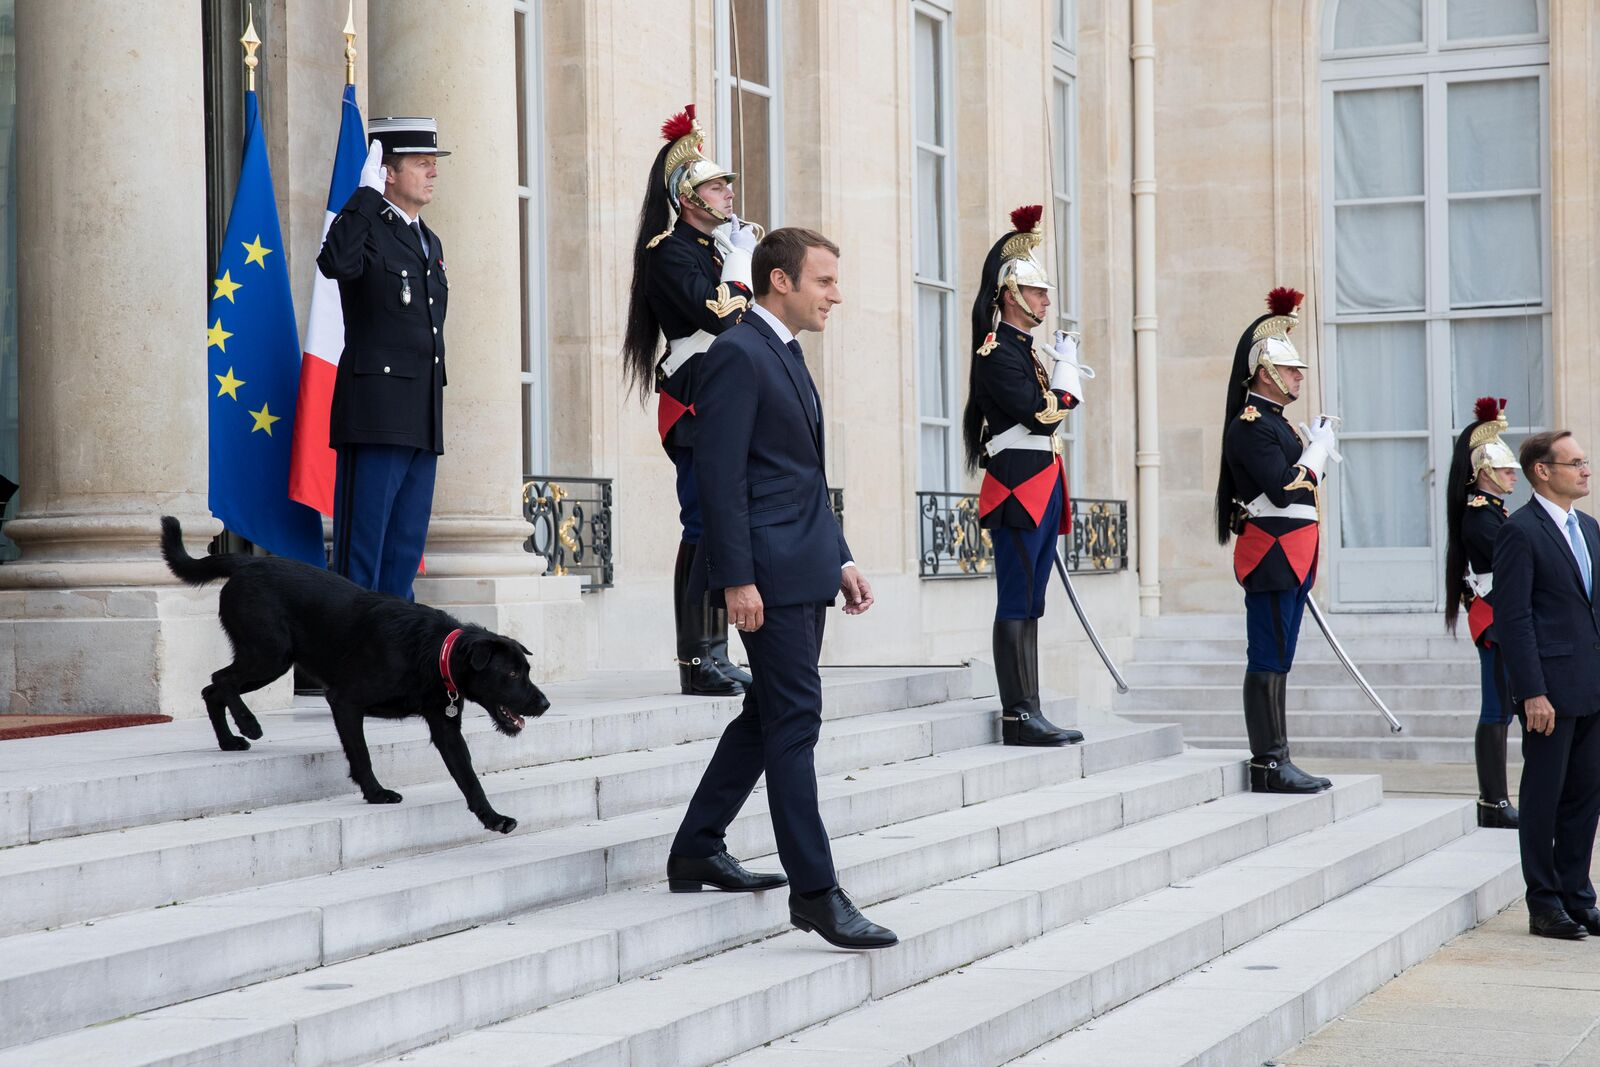 Emmanuel Macron avec son chien Nemo |Source: Getty Images/Global Images Ukraine